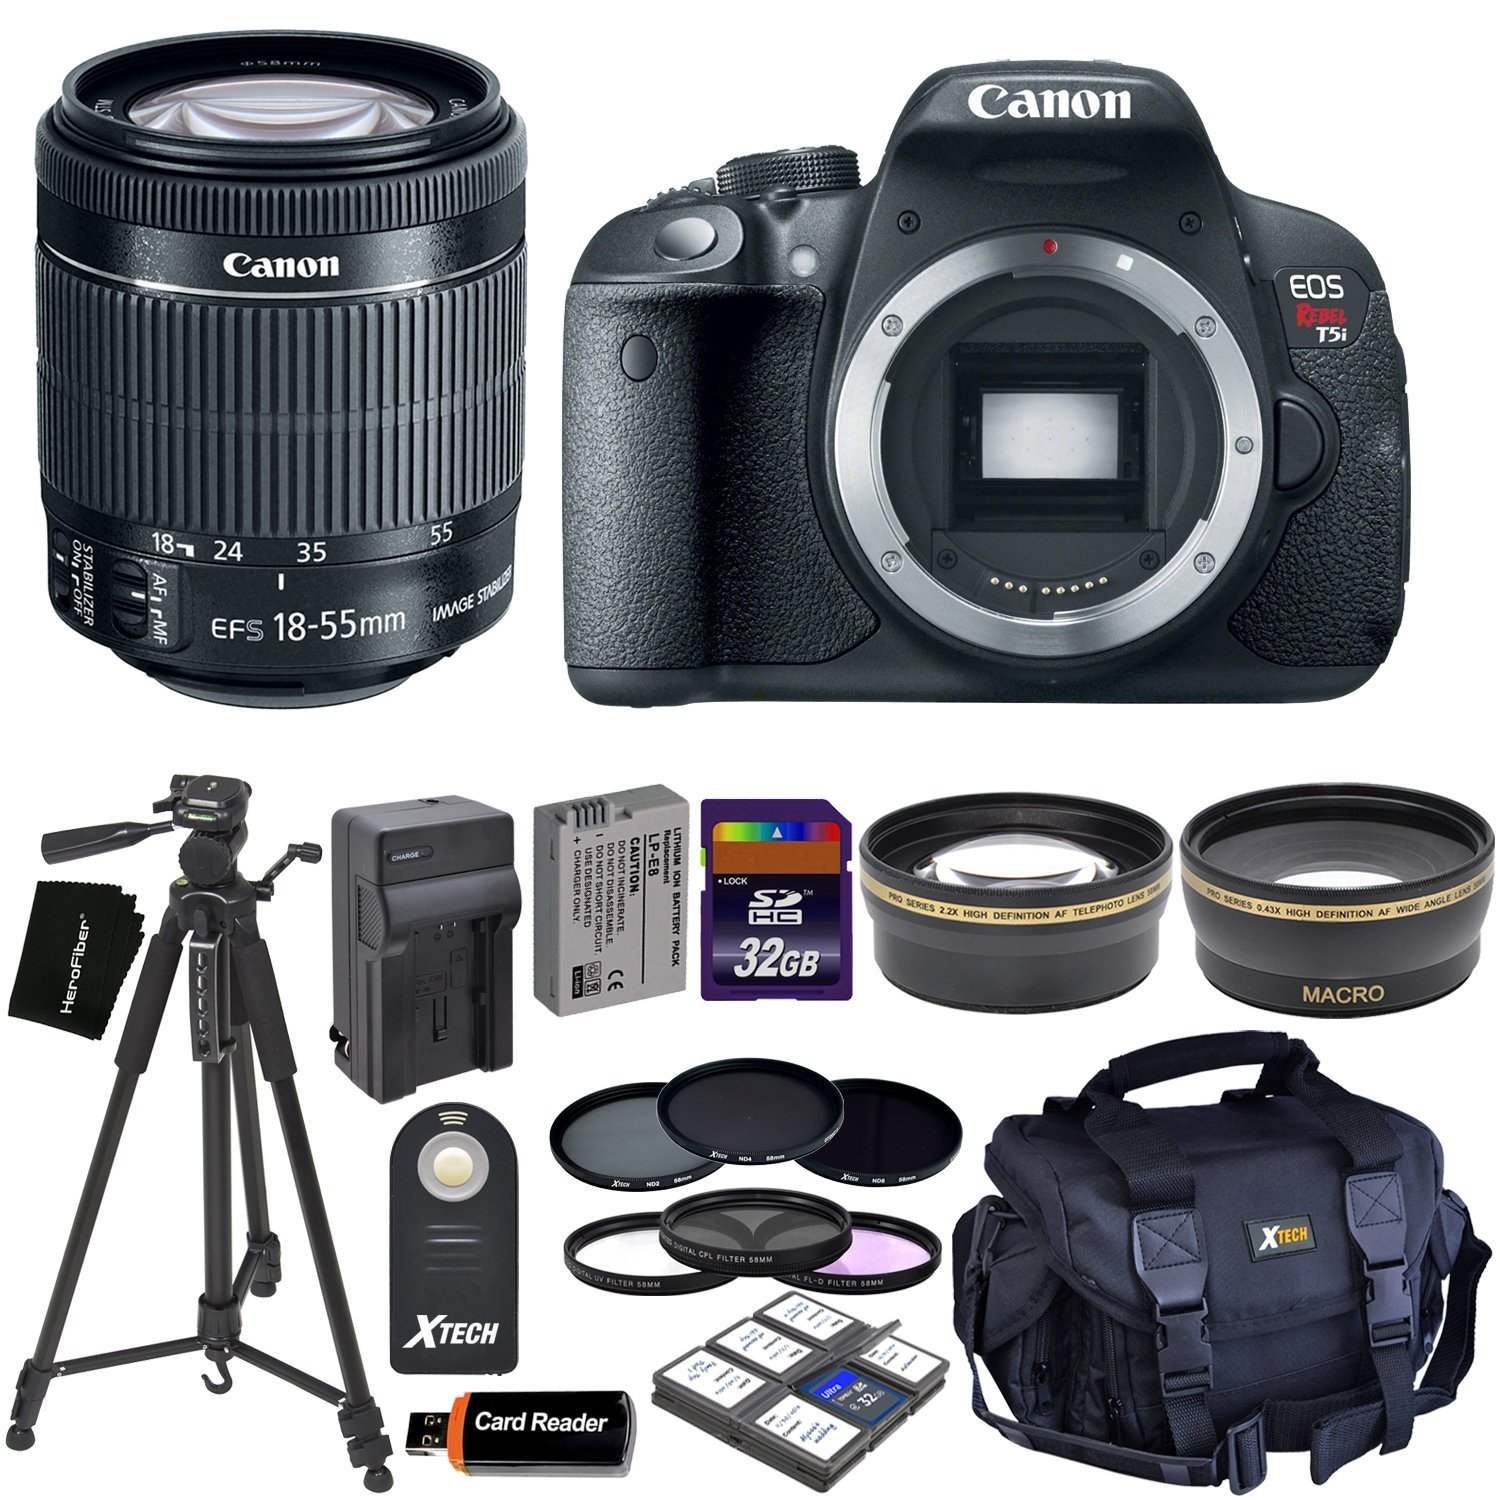 Amazon.com : Canon EOS Rebel T5i Digital SLR Camera with EF-S 18-55mm IS STM Lens (International Version) + Tele & Wide Lenses + Neutral Density Filters ND2, ND4, ND8 + 15pc 32GB Dlx Accessory Kit